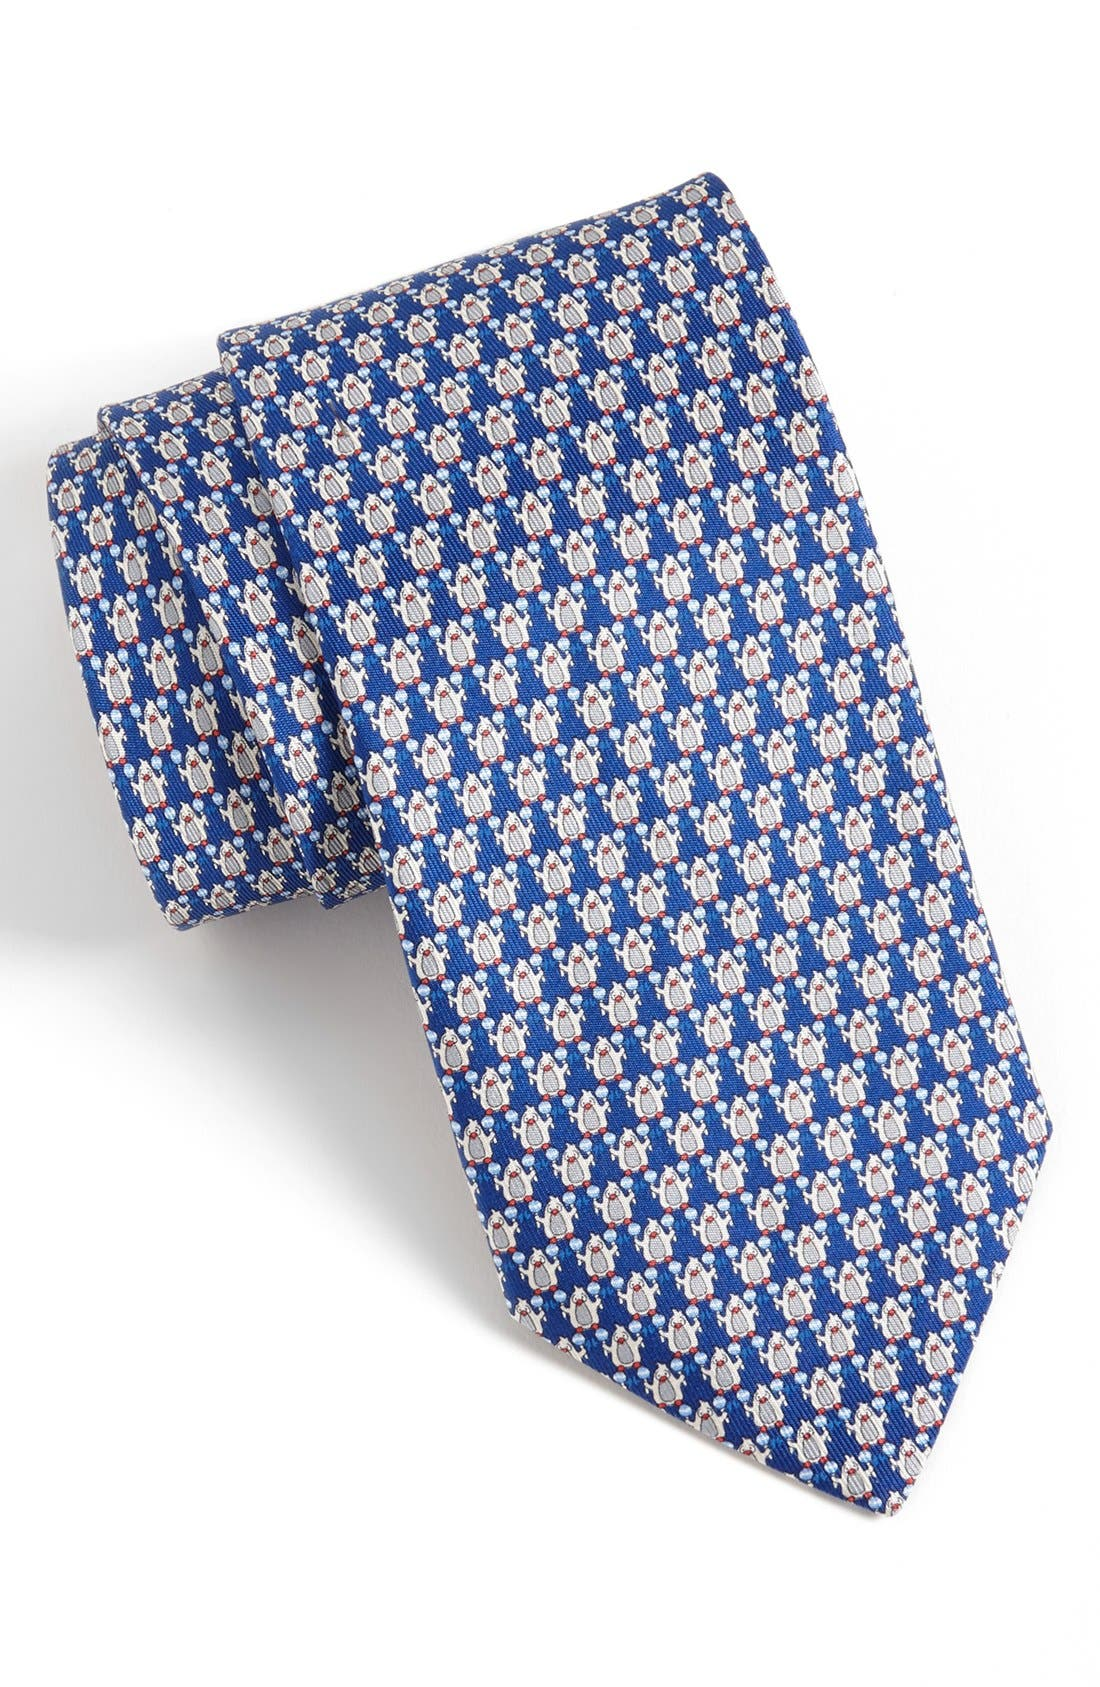 Alternate Image 1 Selected - Salvatore Ferragamo Penguin Print Silk Tie